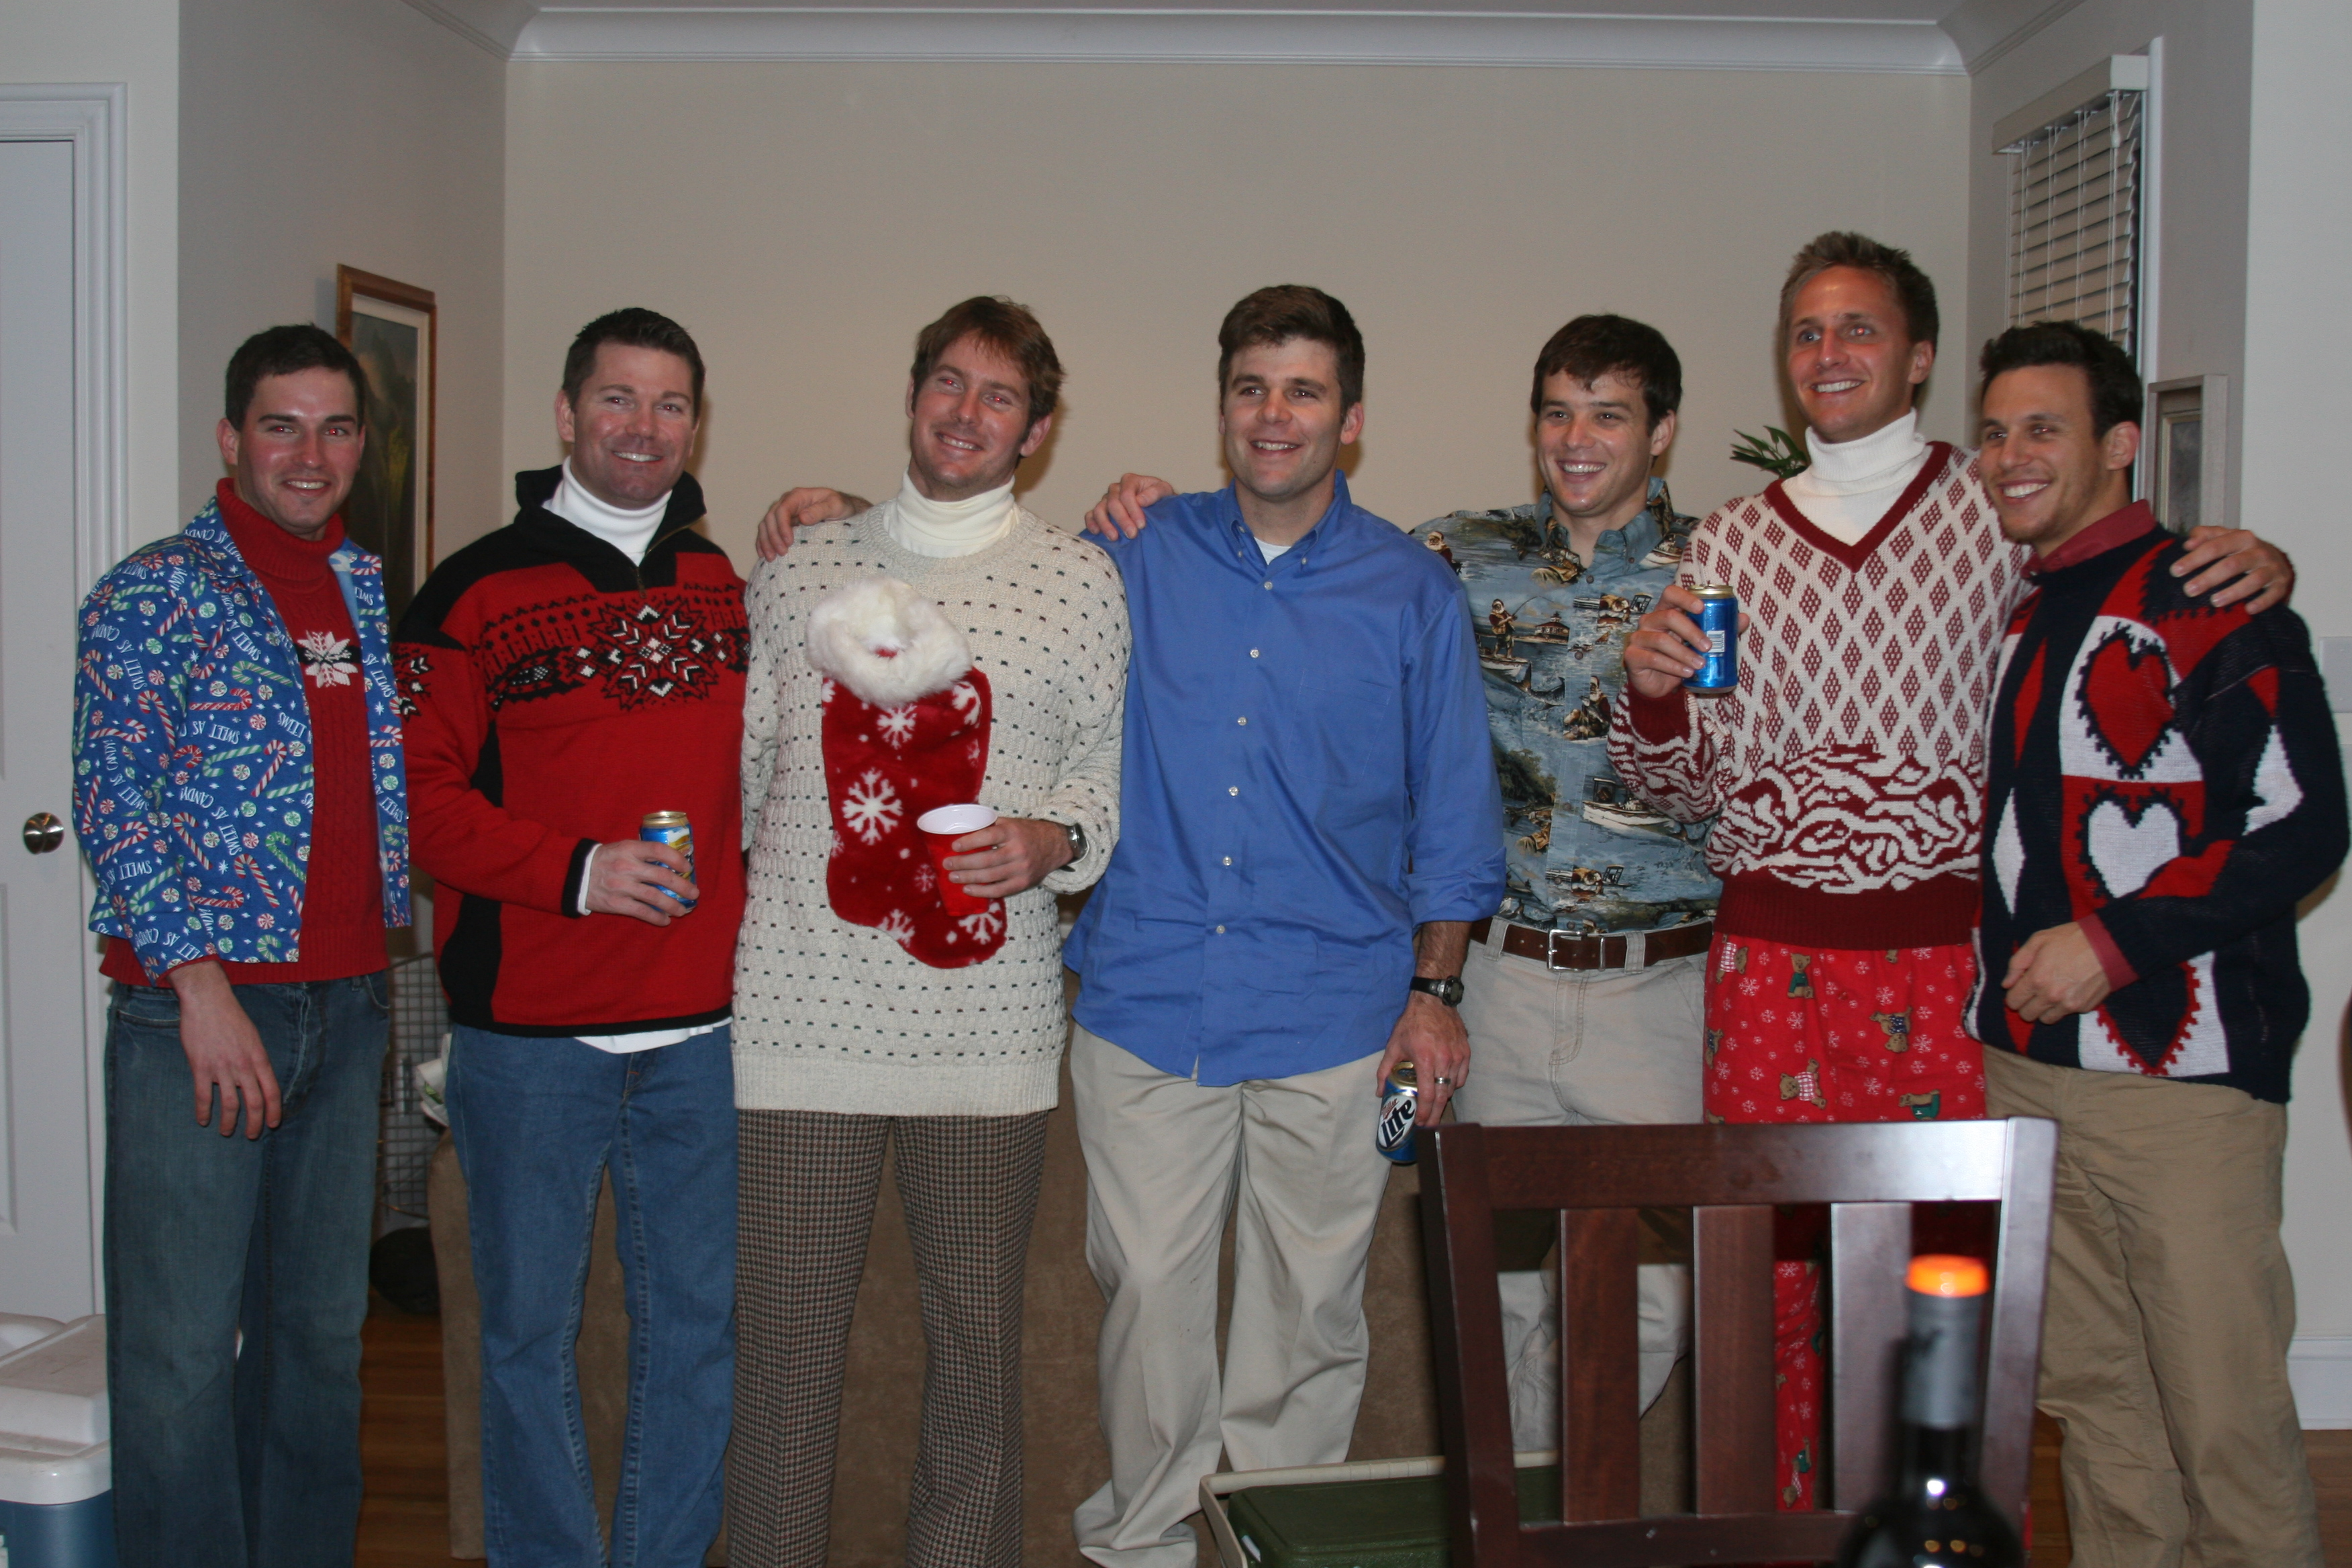 Ugly Sweater Christmas Party 2010